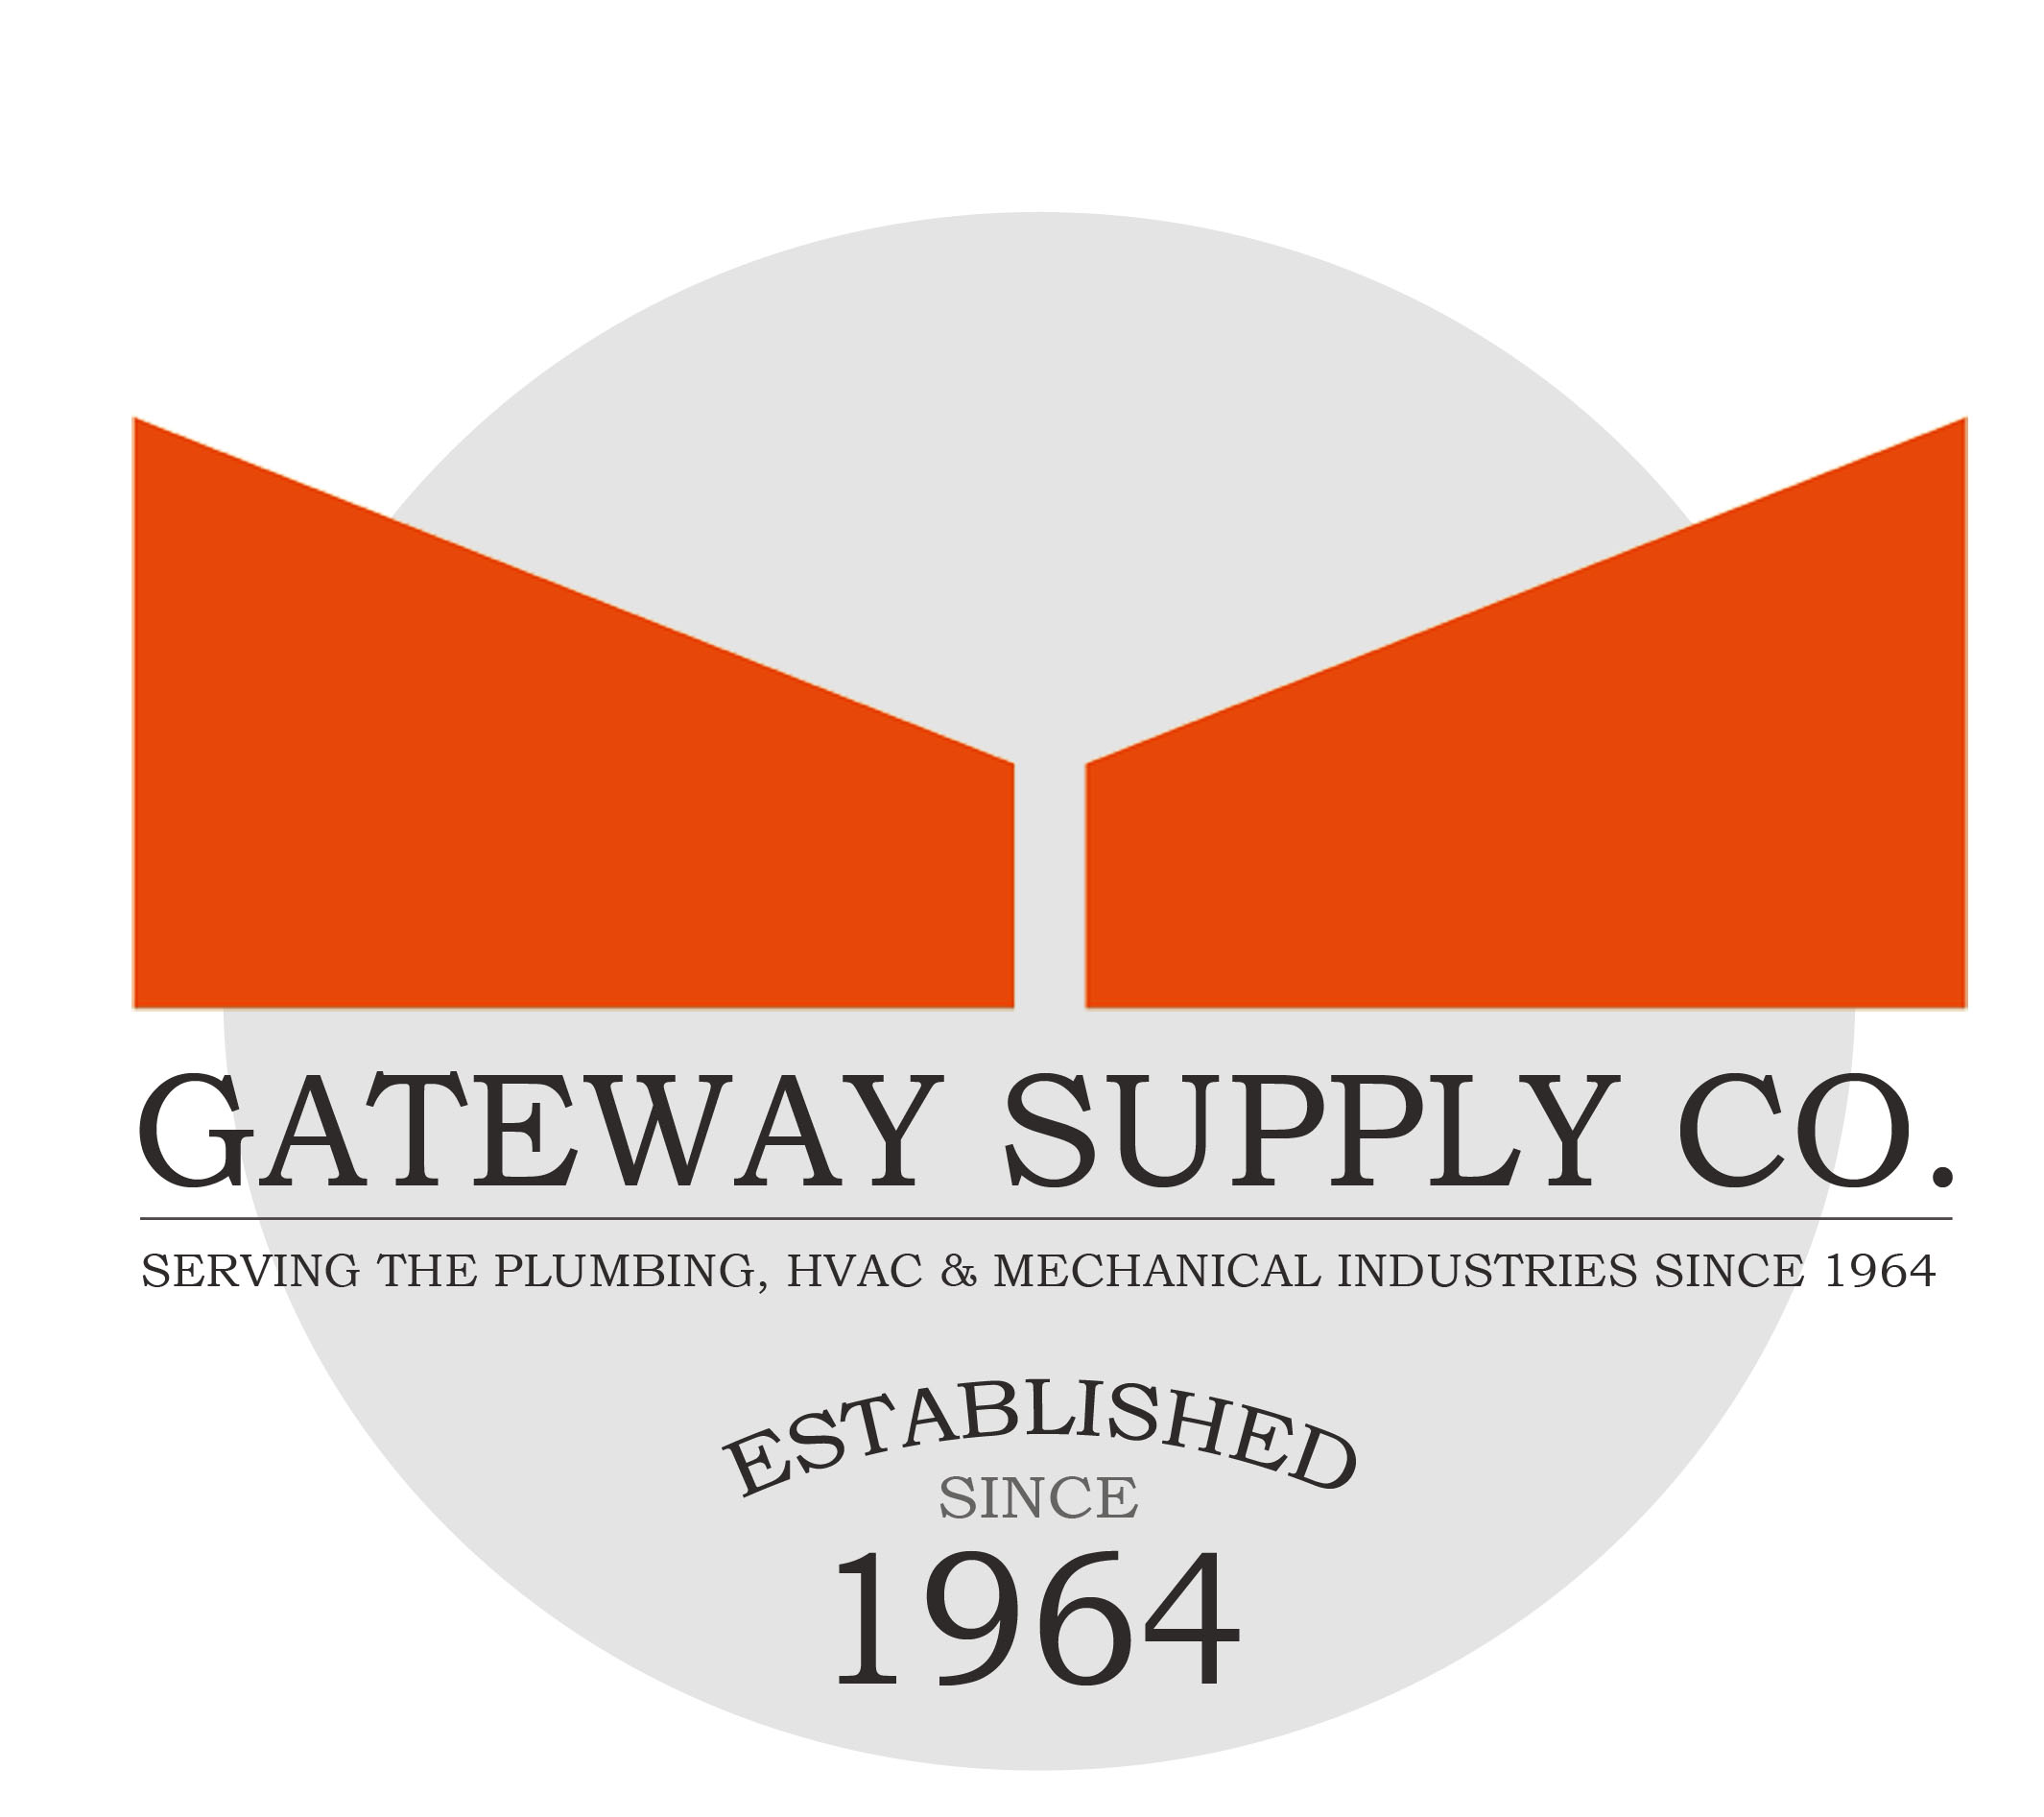 Gateway Supply Co 1369 Fire Tower Rd, Rock Hill, SC 29730 - YP.com